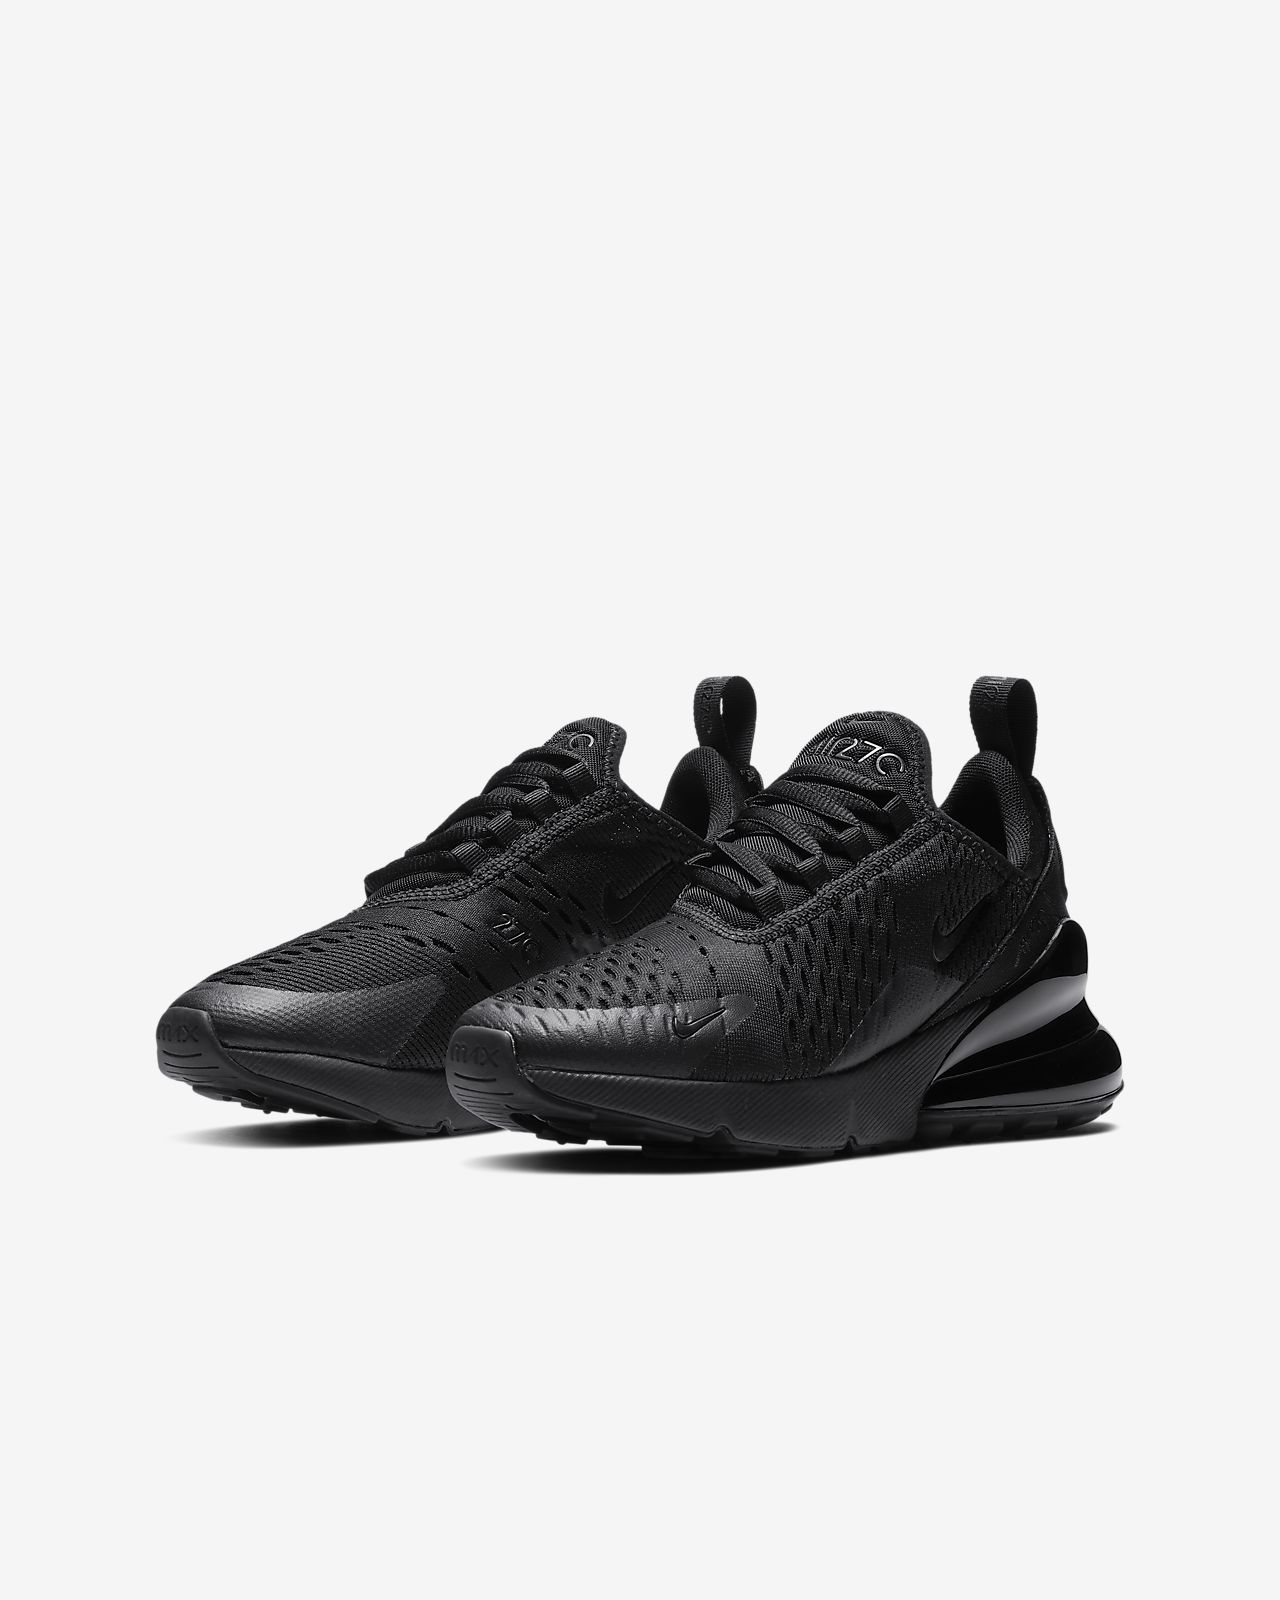 Nike Air Max 270 in 2019 | Nike shoes, Shoes, Sneakers nike